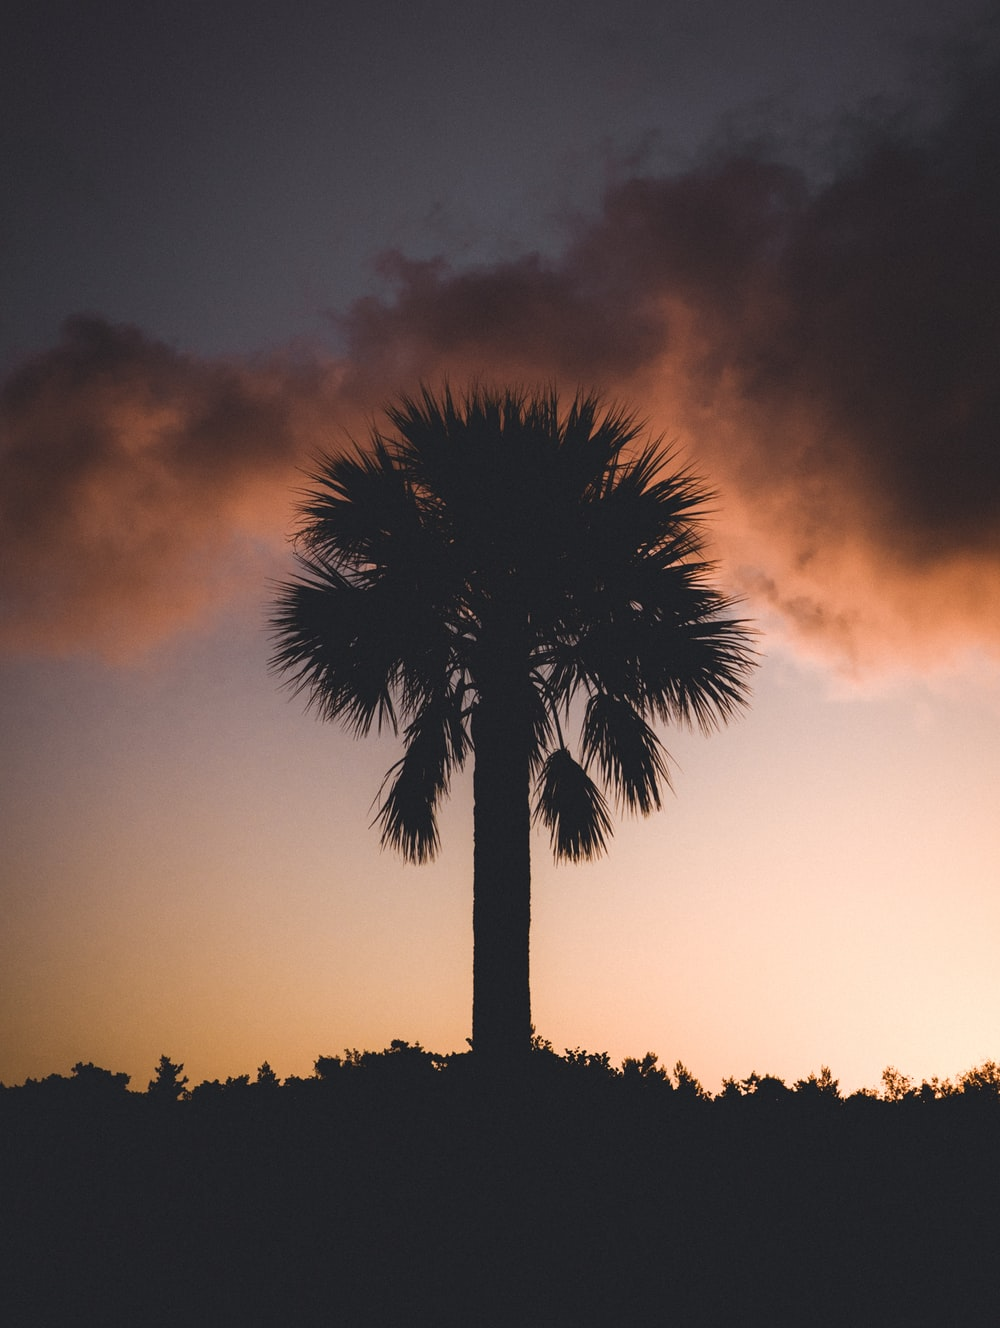 silhouette of palm tree at golden hour